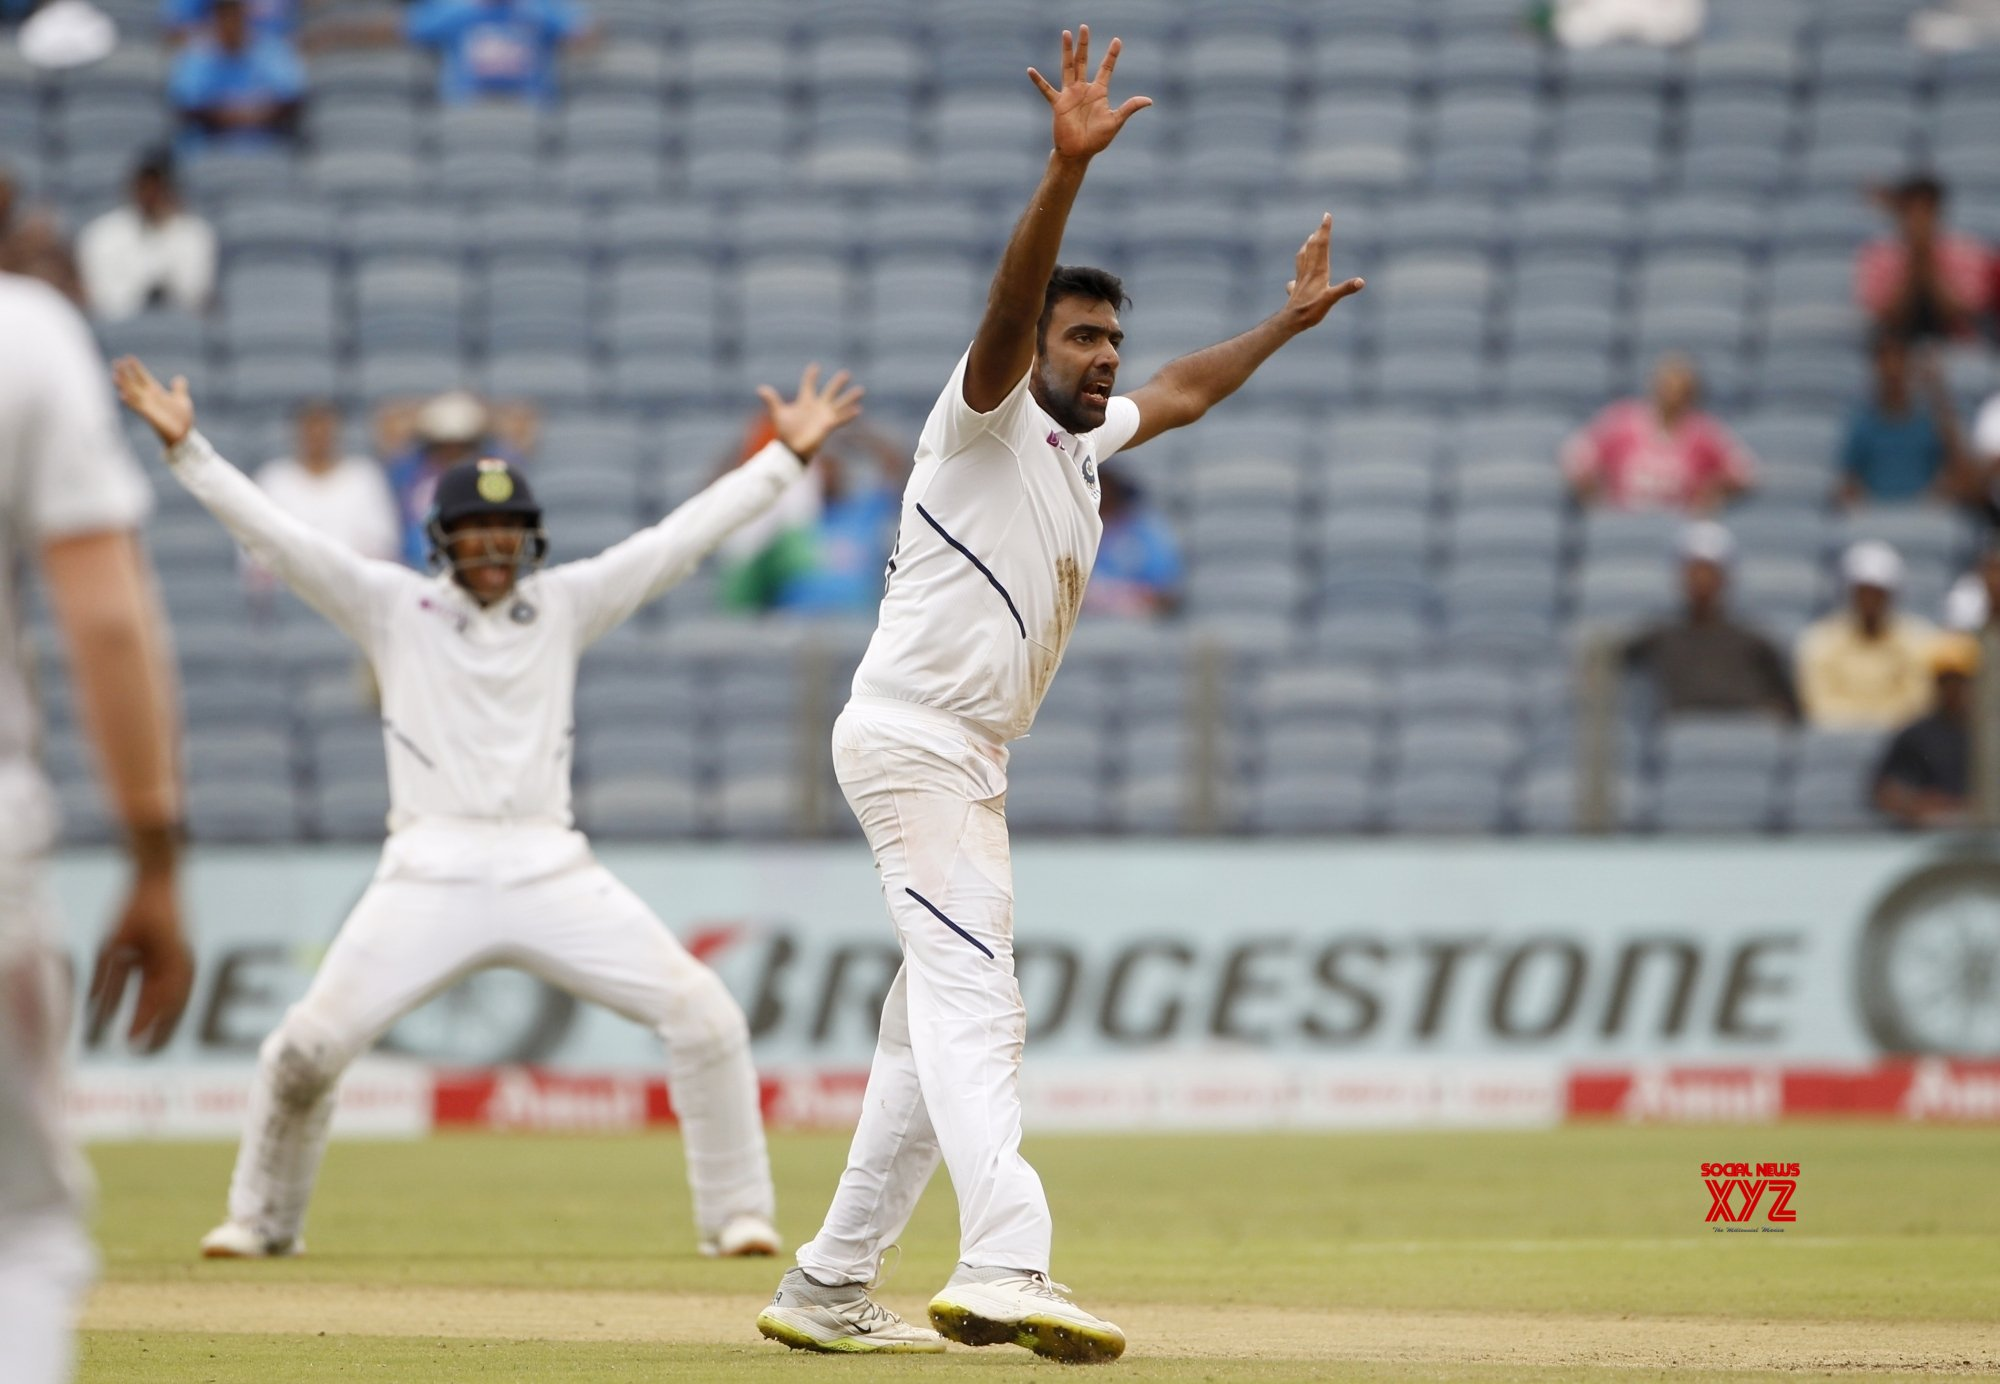 Pune: 2nd Test - India Vs South Africa - Day 3 (Batch - 19) #Gallery